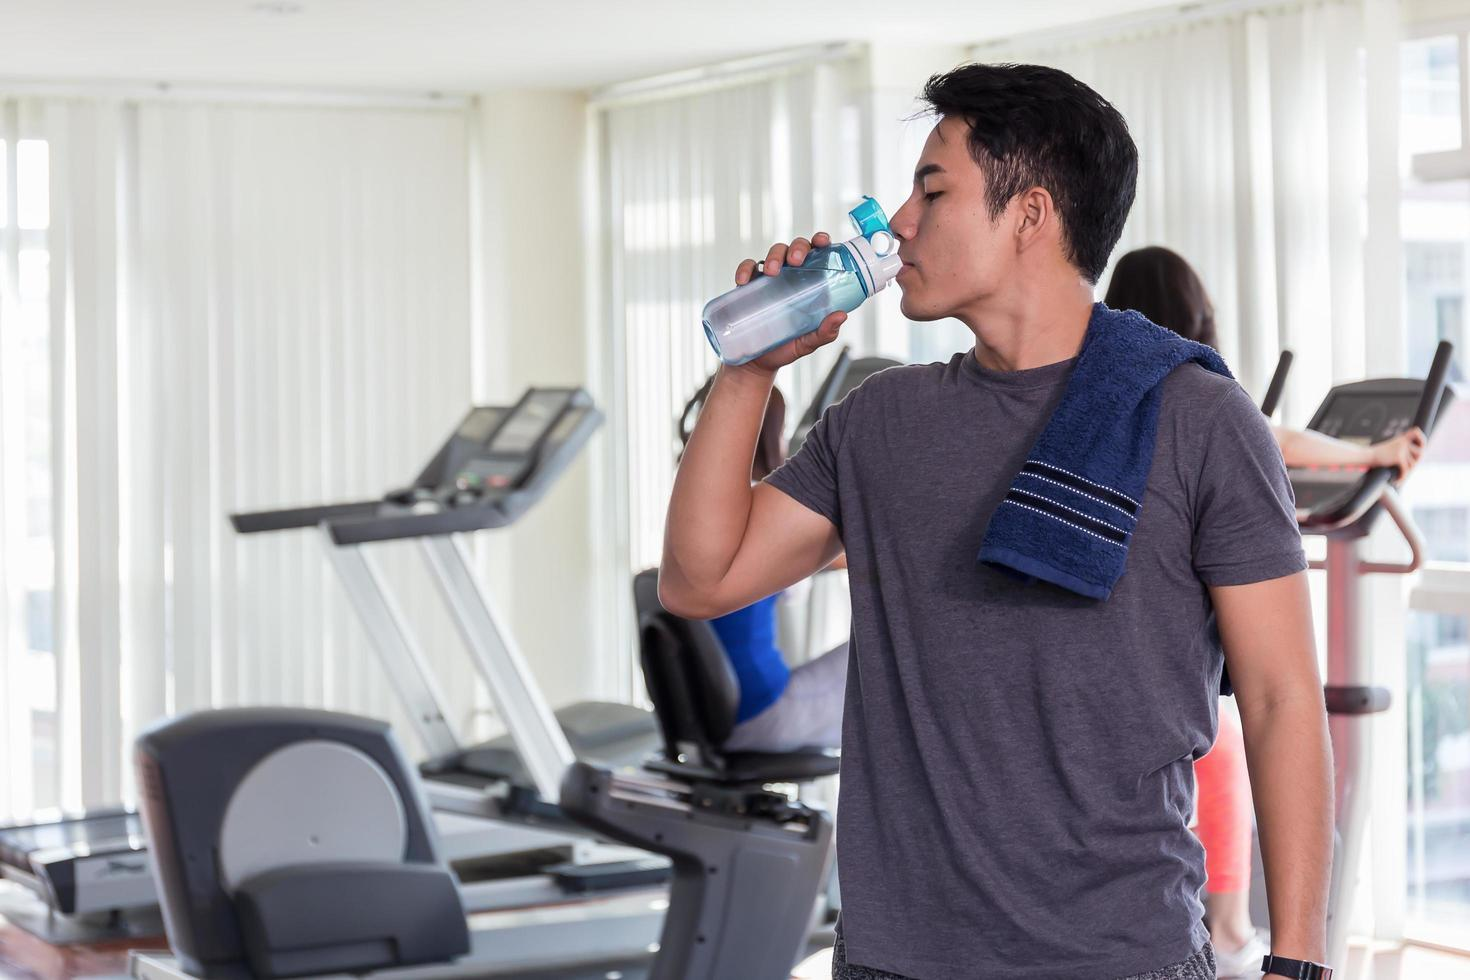 Man drinking water in the gym photo